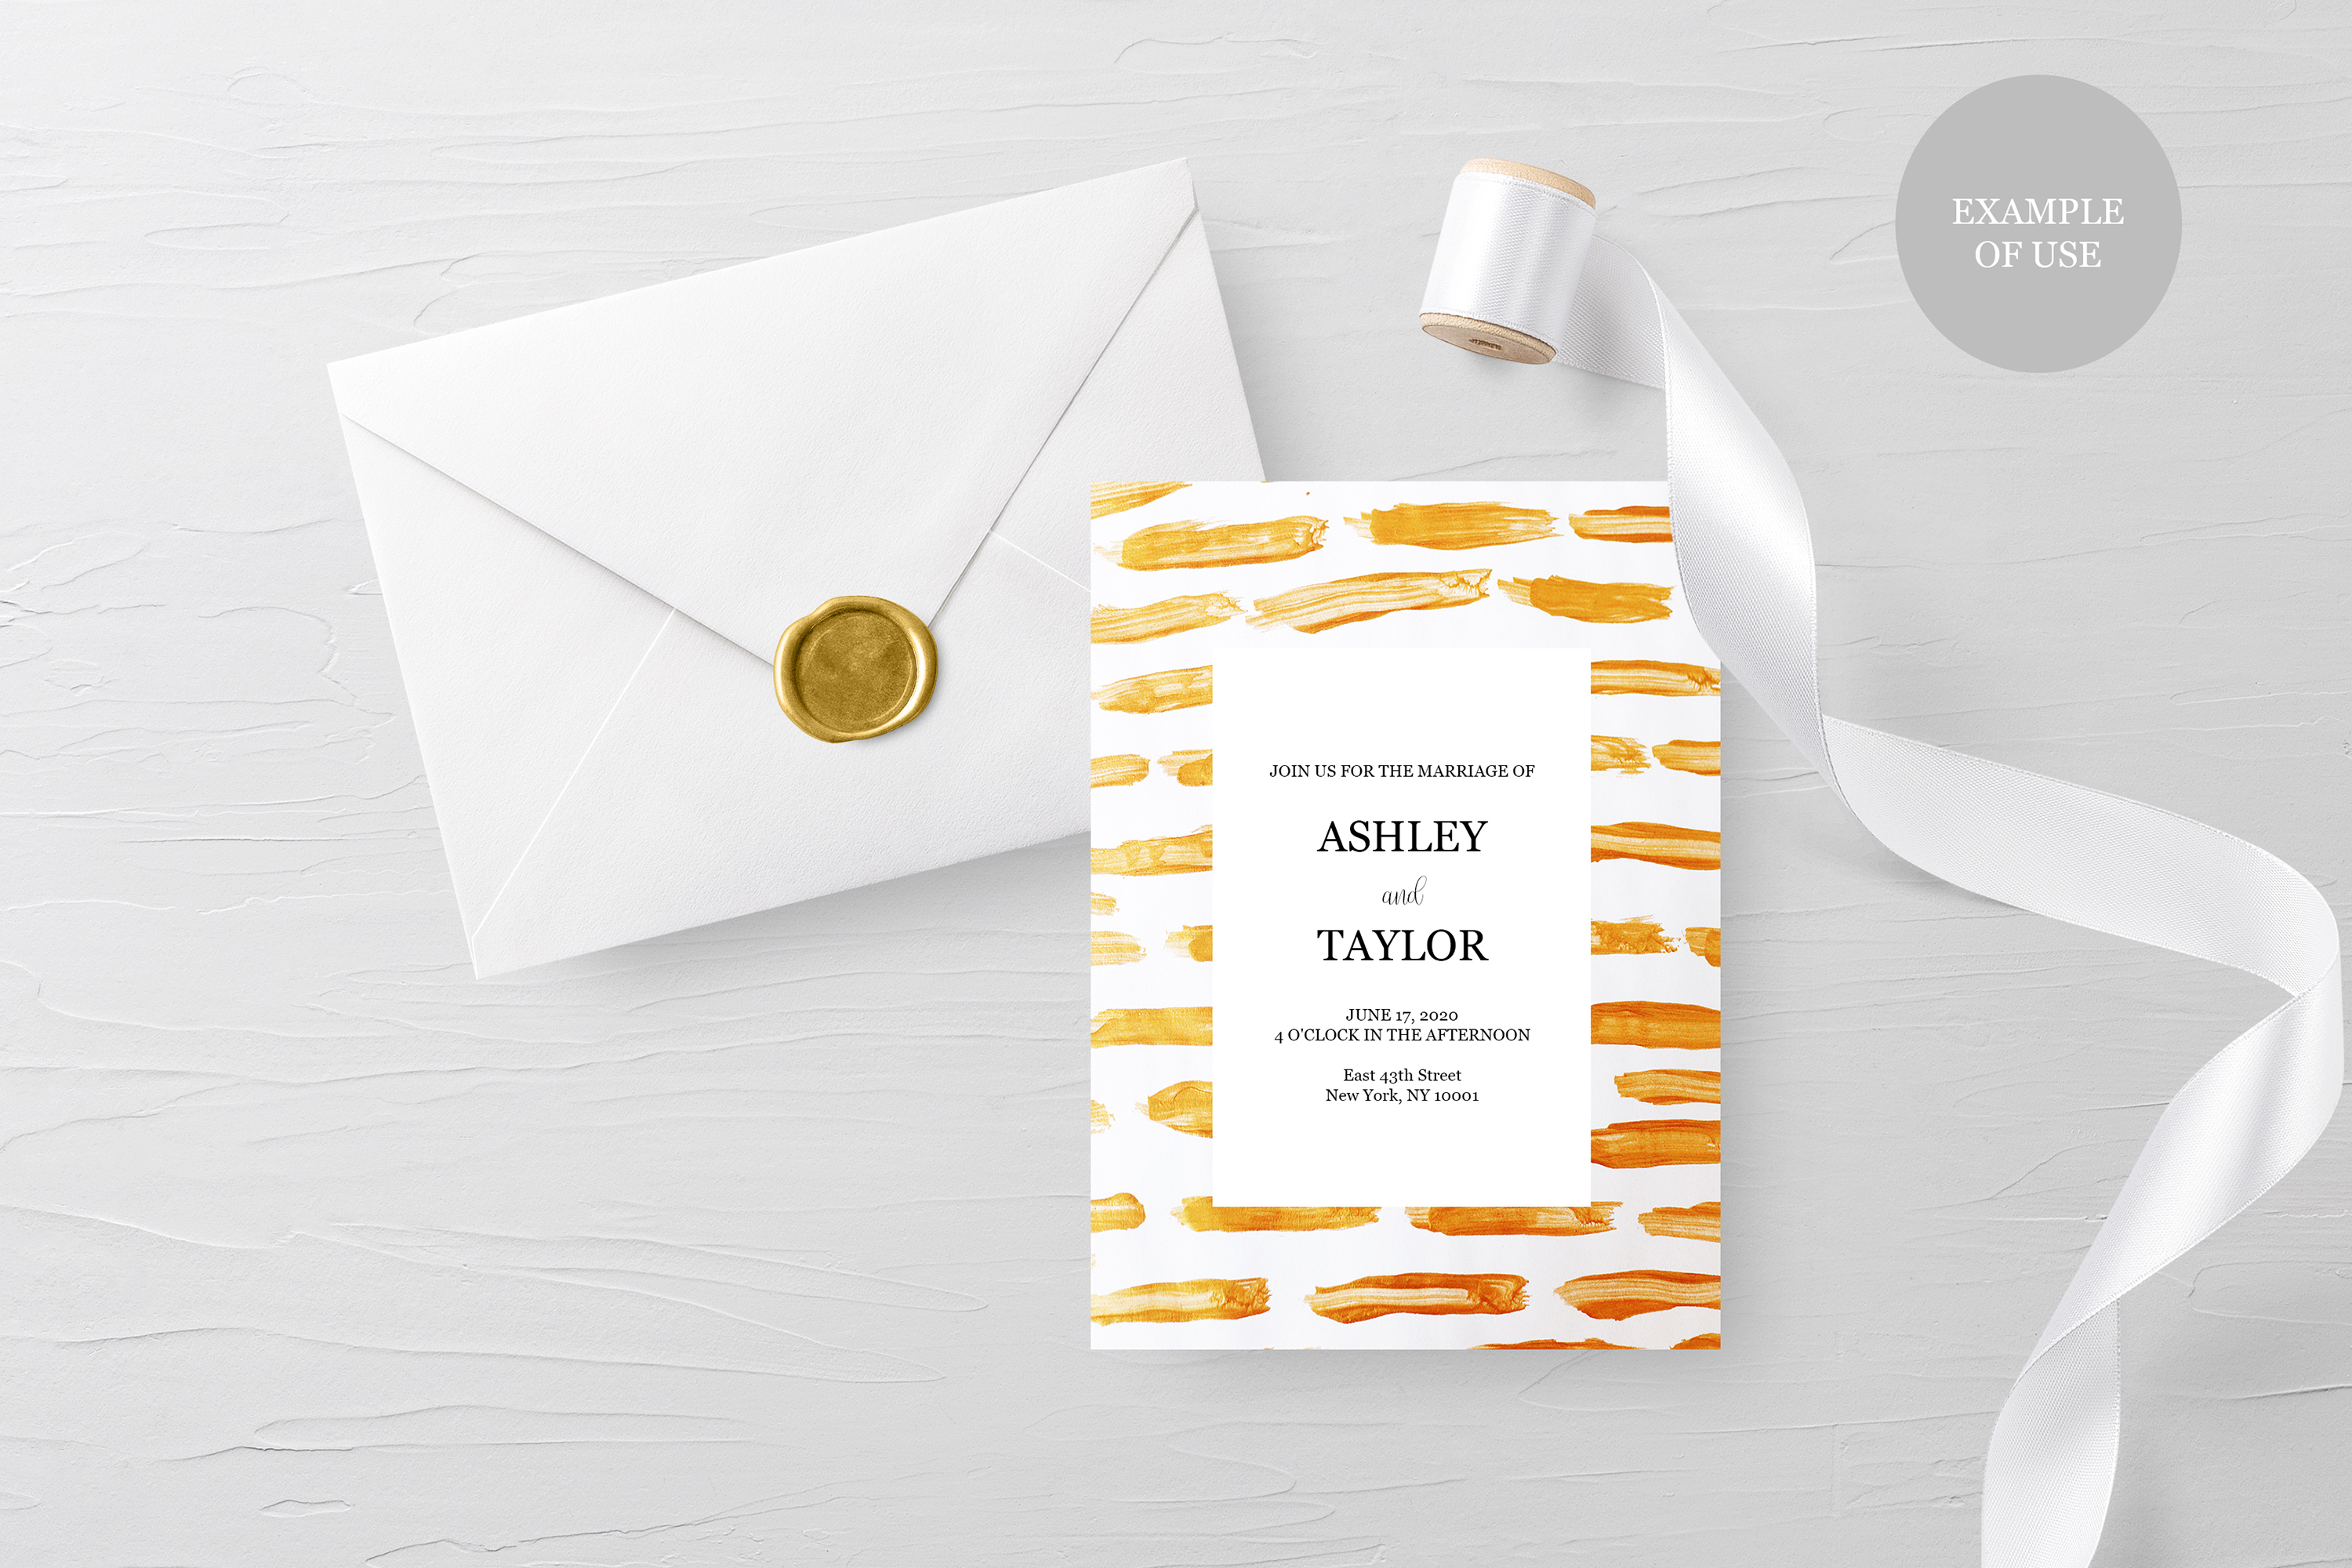 Gold & White Backgrounds, Wedding Invitation Papers example image 7